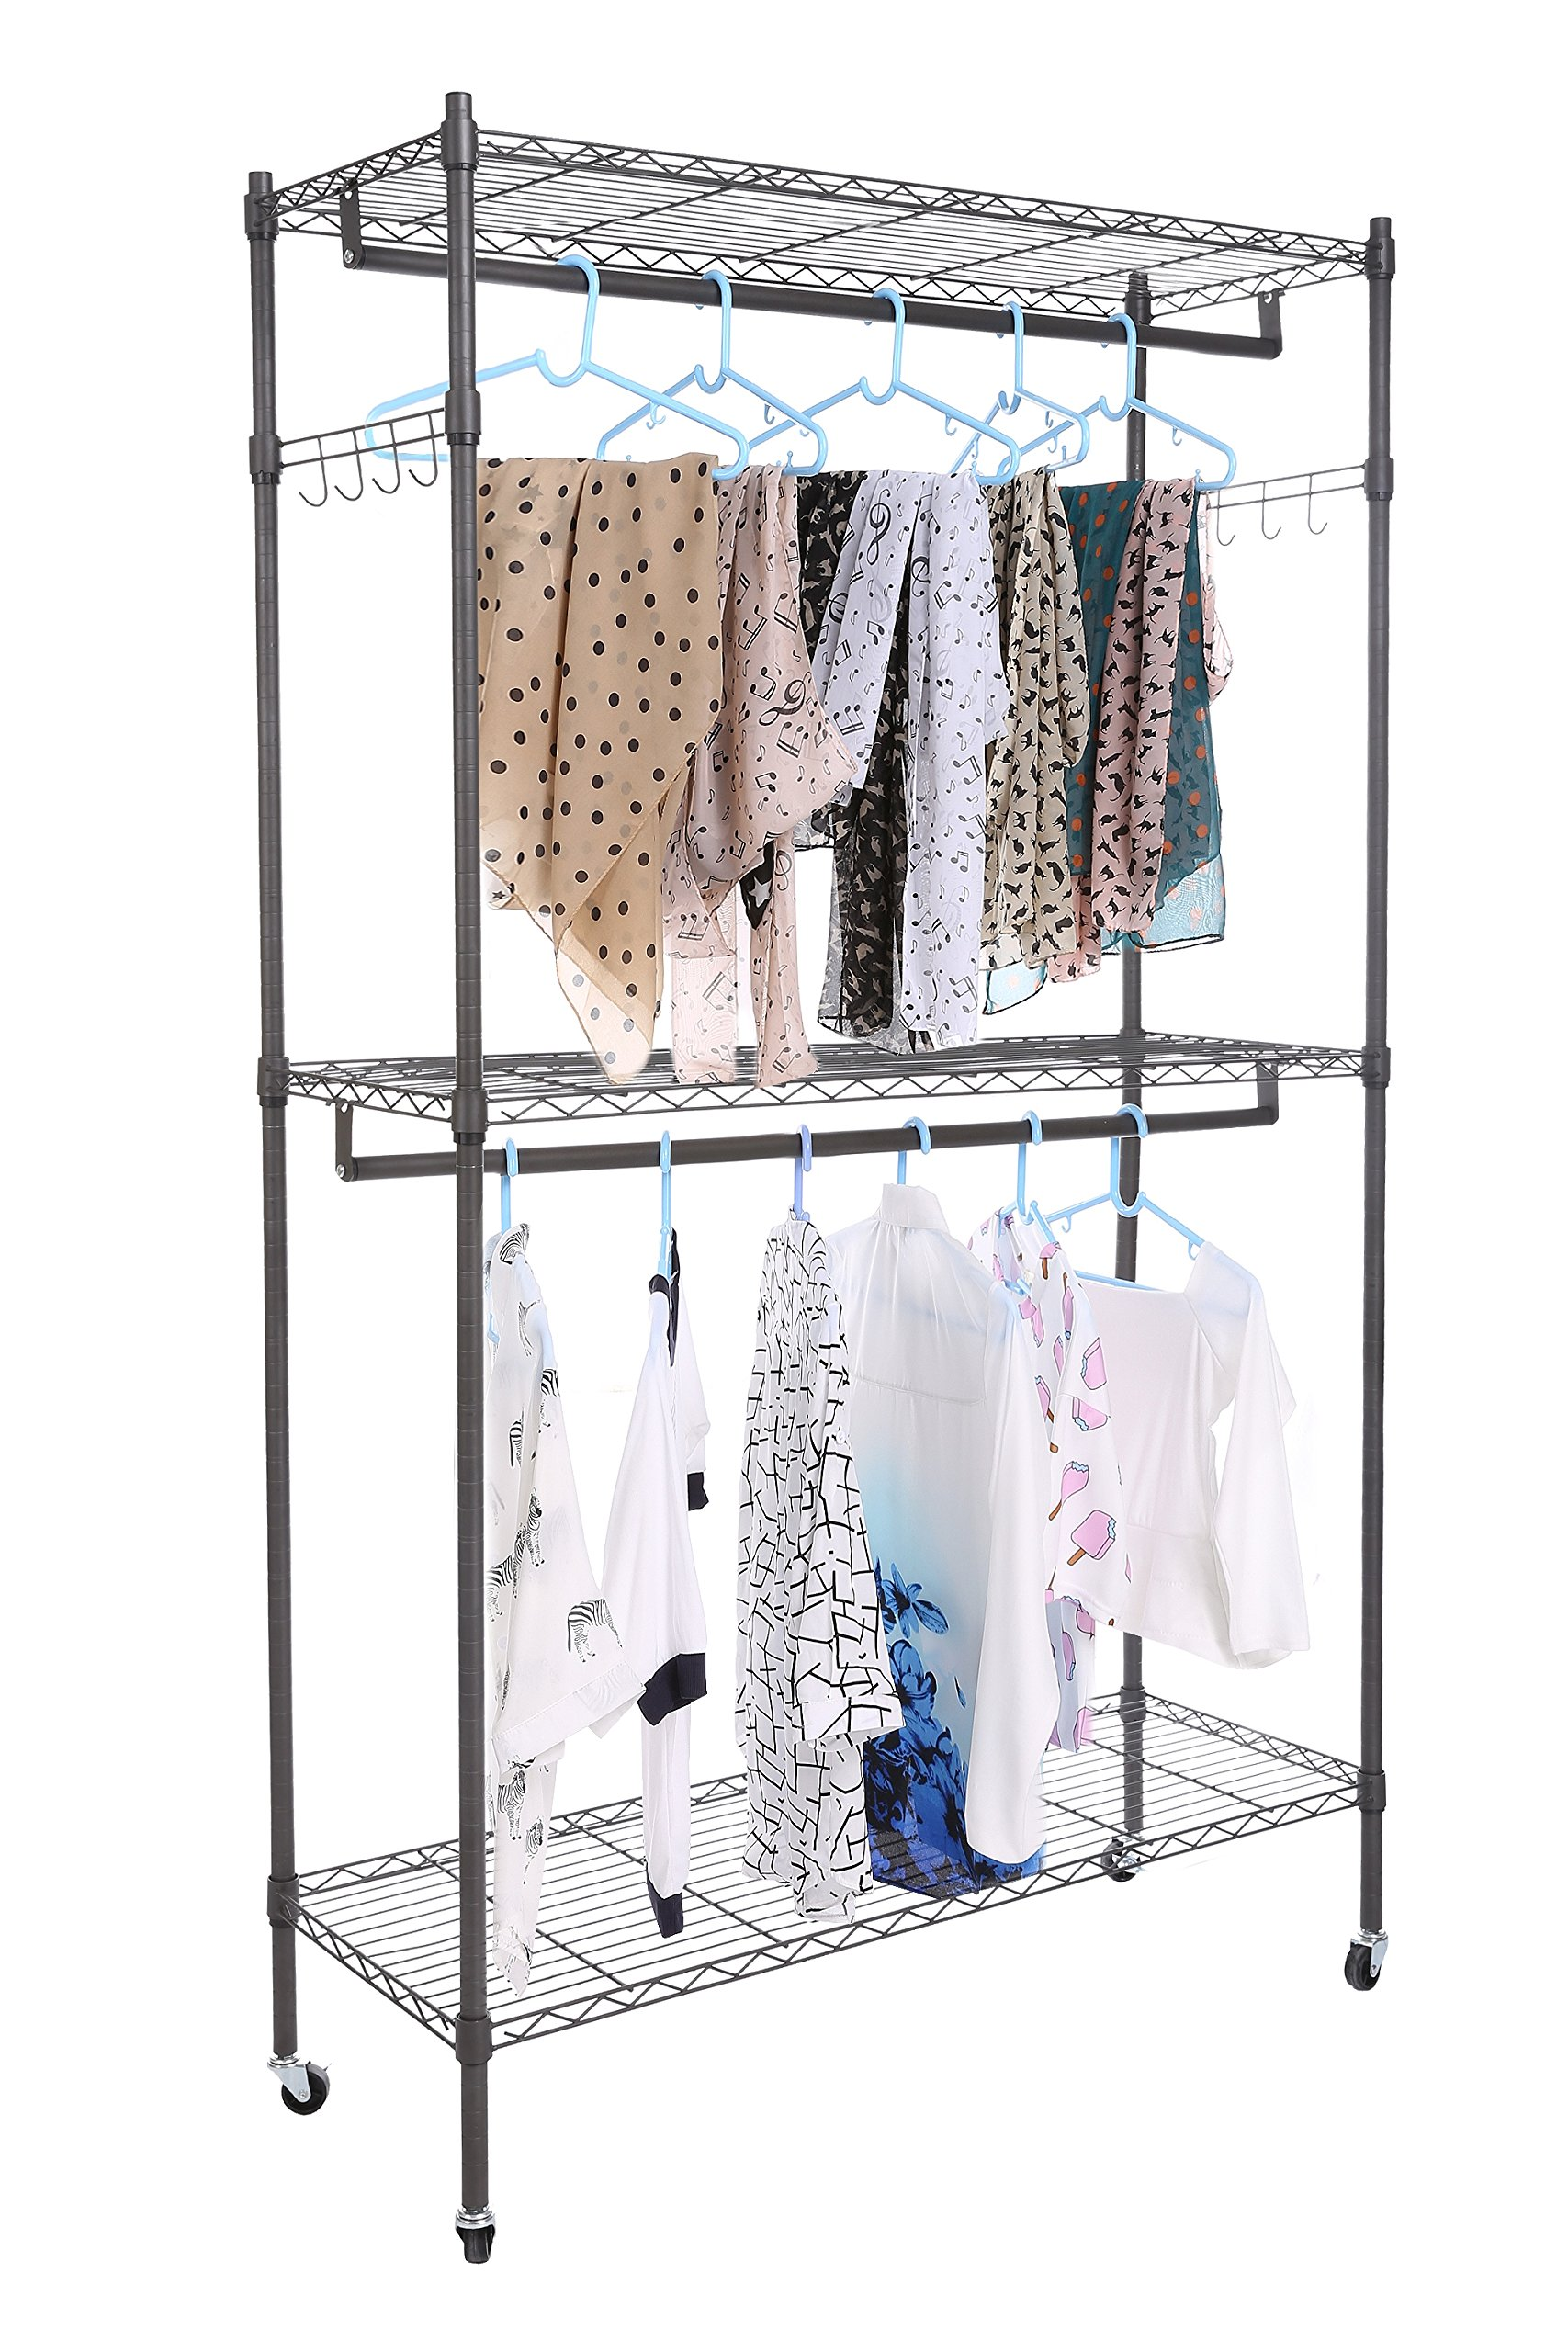 Hanging display rack for clothes cheesea clothes display rack store with 3 shelves wire